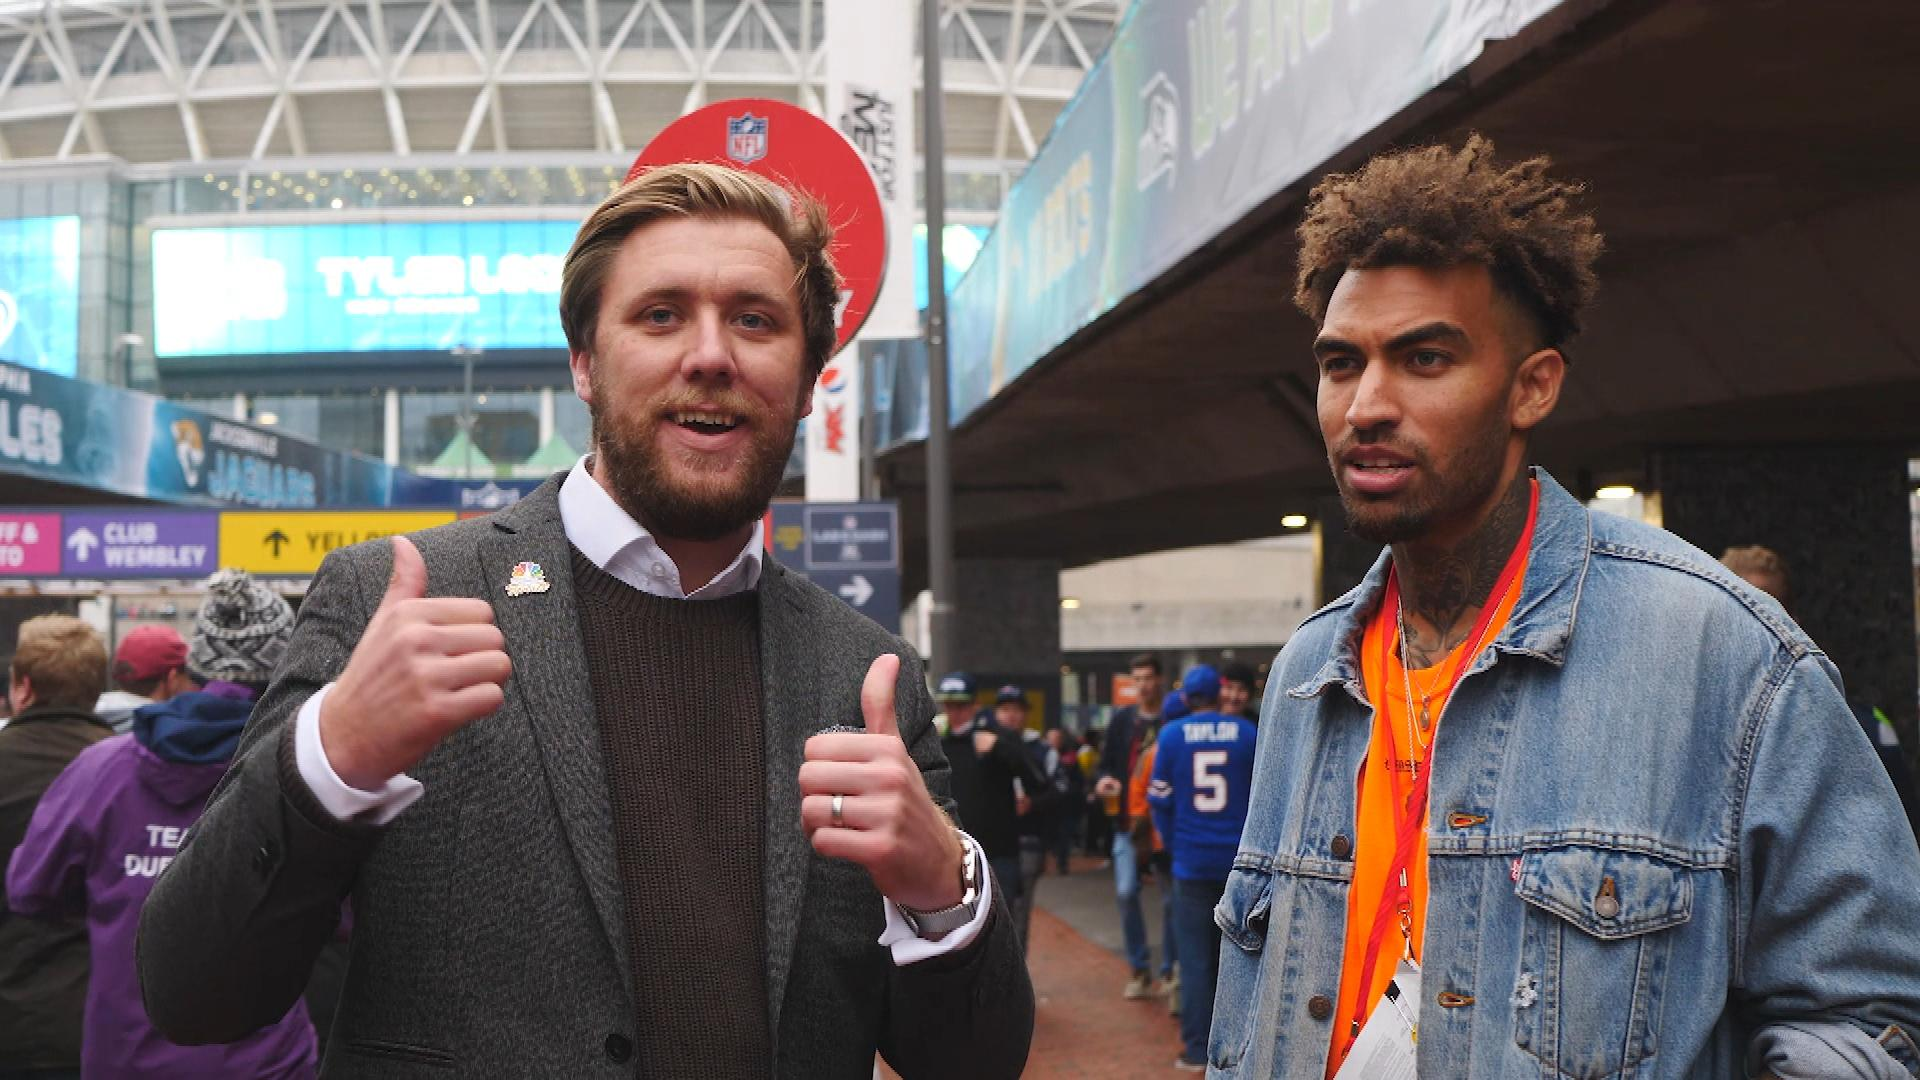 Huddersfield's Danny Williams on his friendship with Odell Beckham Jr.